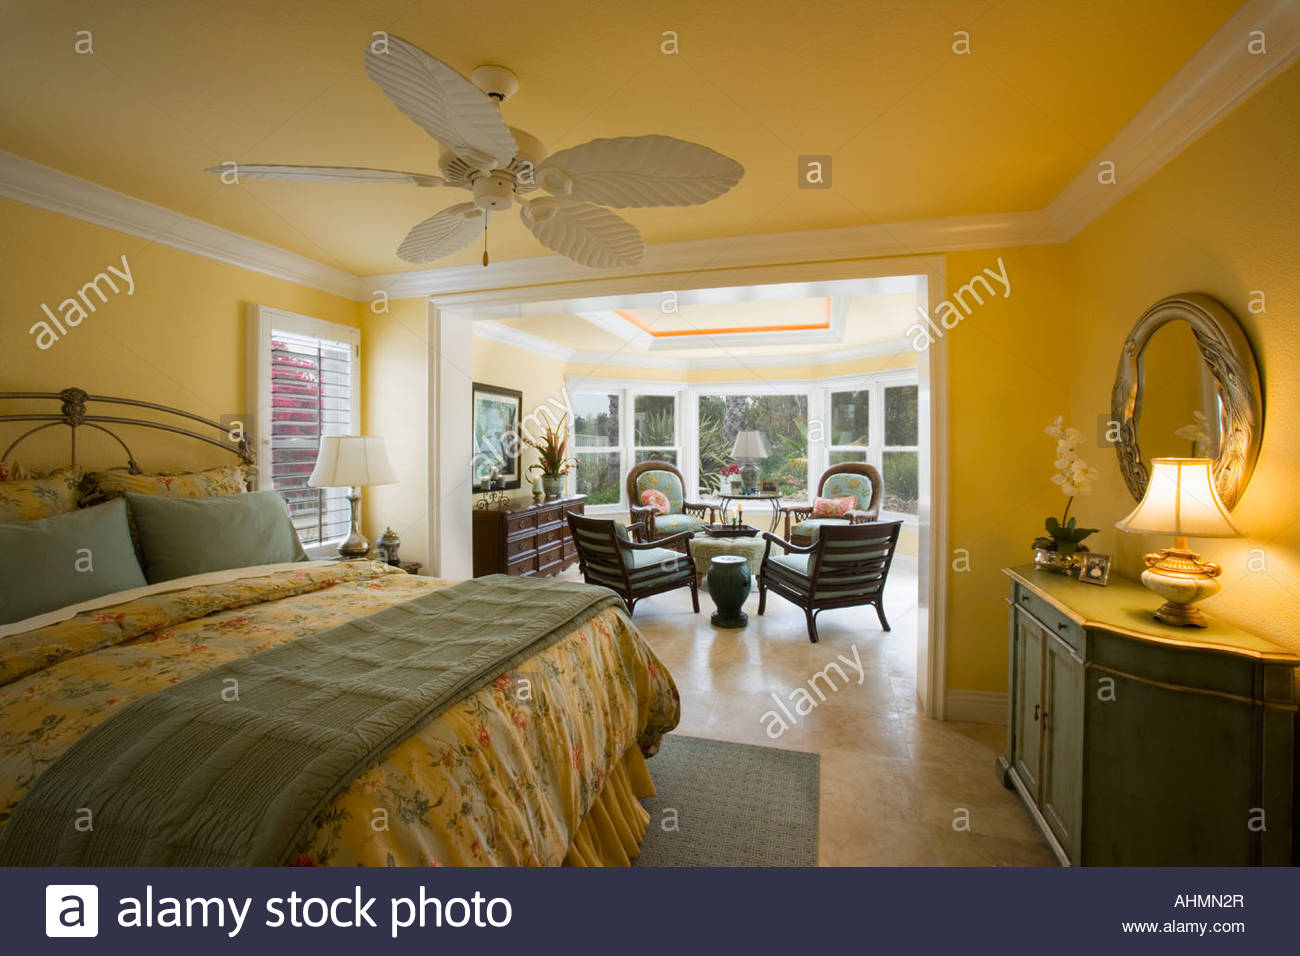 Large Yellow Master Bedroom With Sunroom Stock Photo 14507950 Alamy